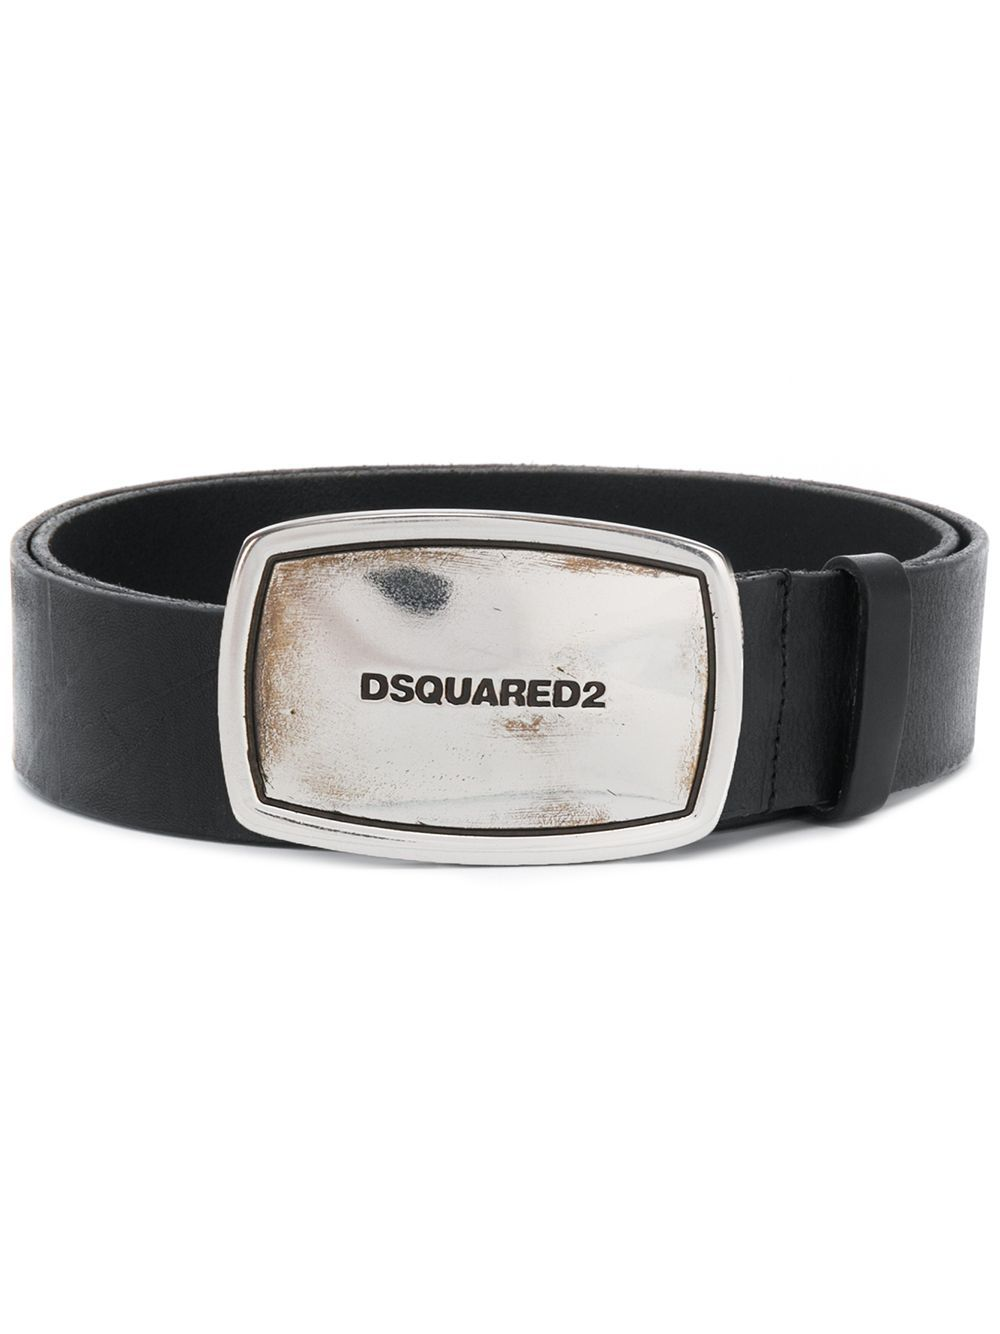 DSQUARED2 Logo Plaque Belt Black - Maison De Fashion